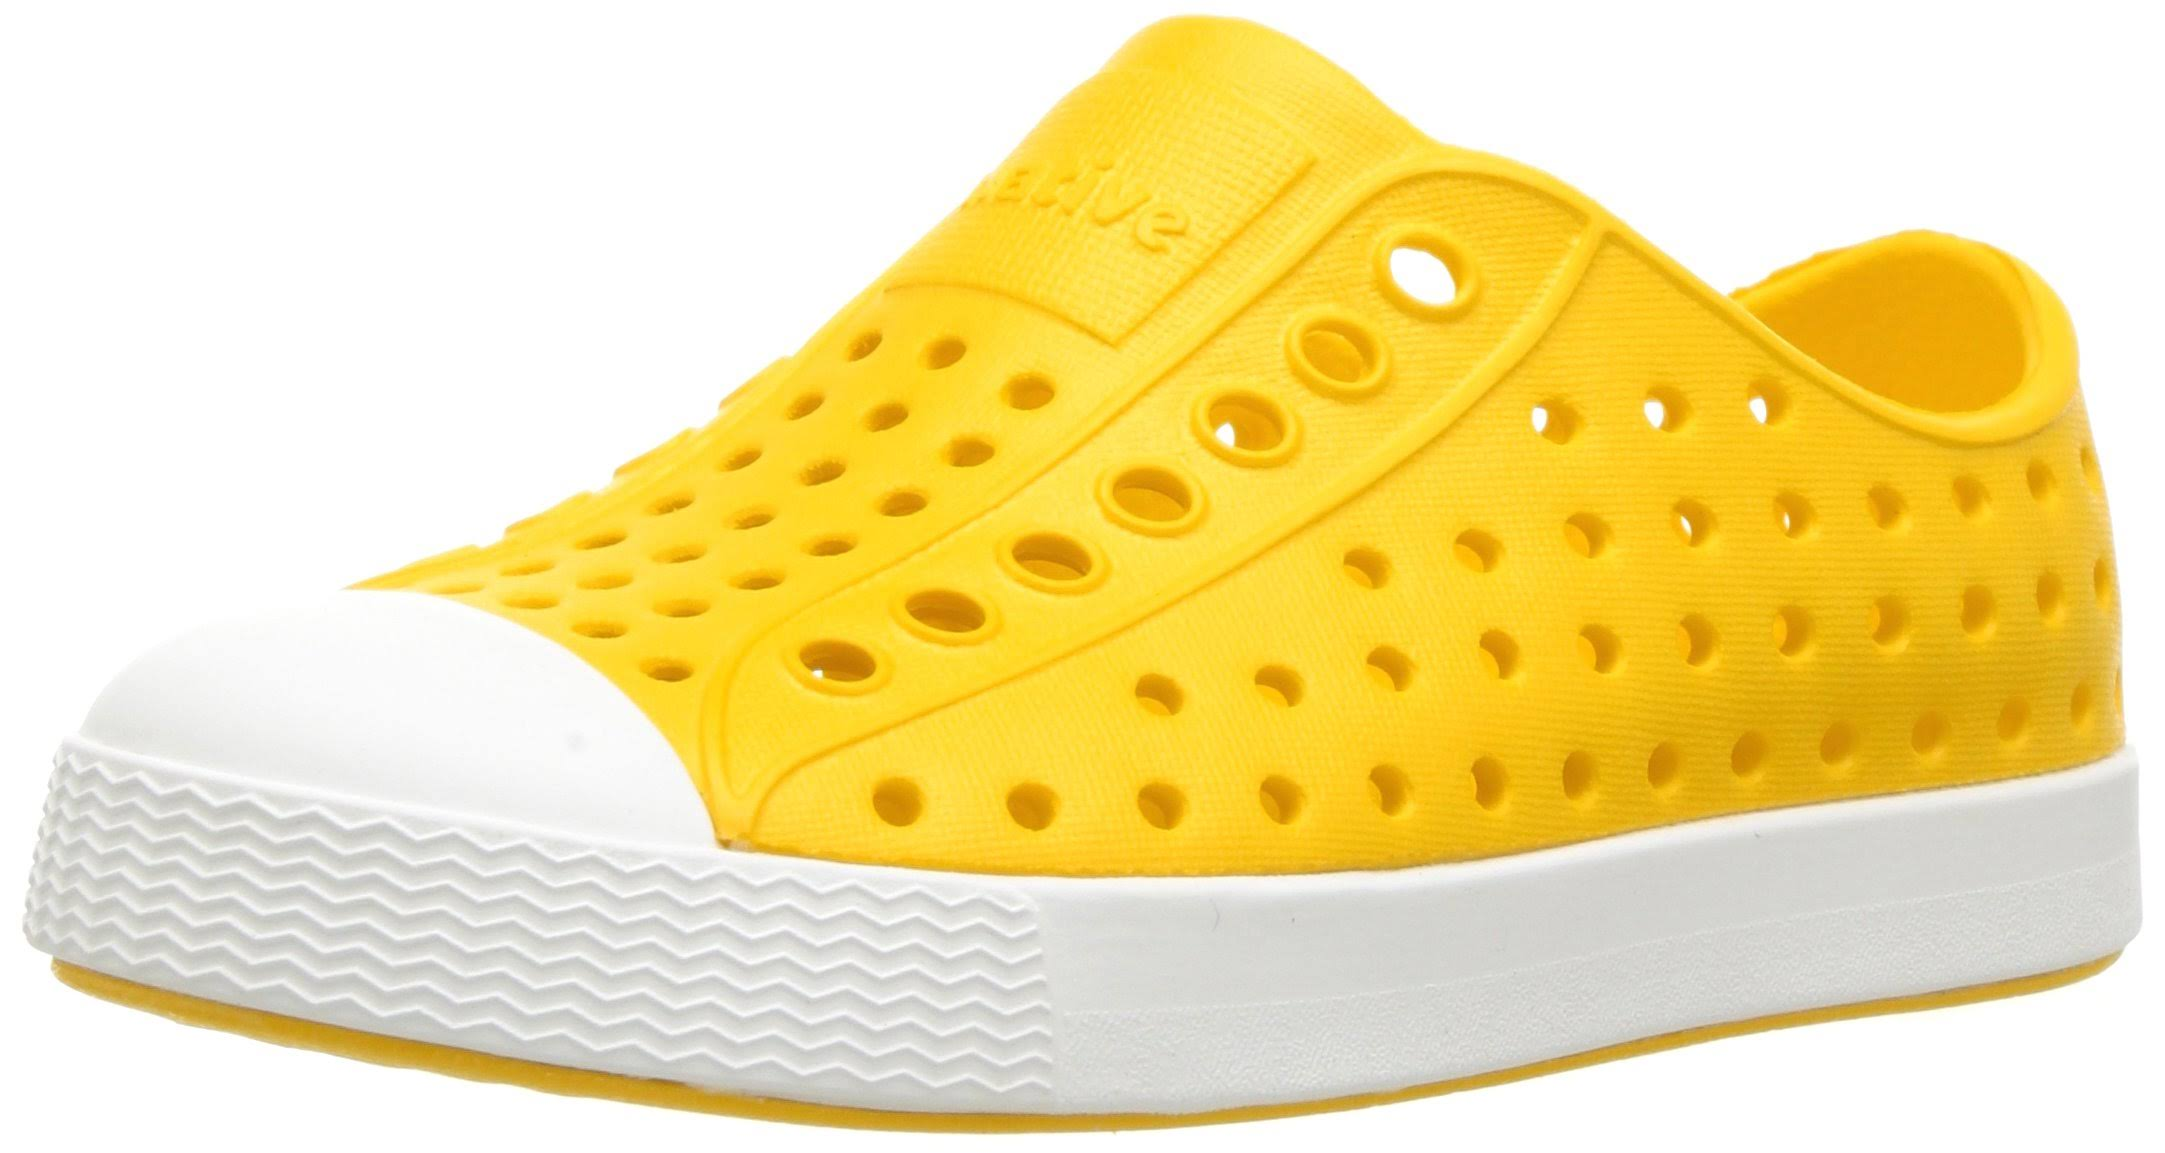 Native Little Kids' Crayon Yellow/Shell White Jefferson Shoes - 9